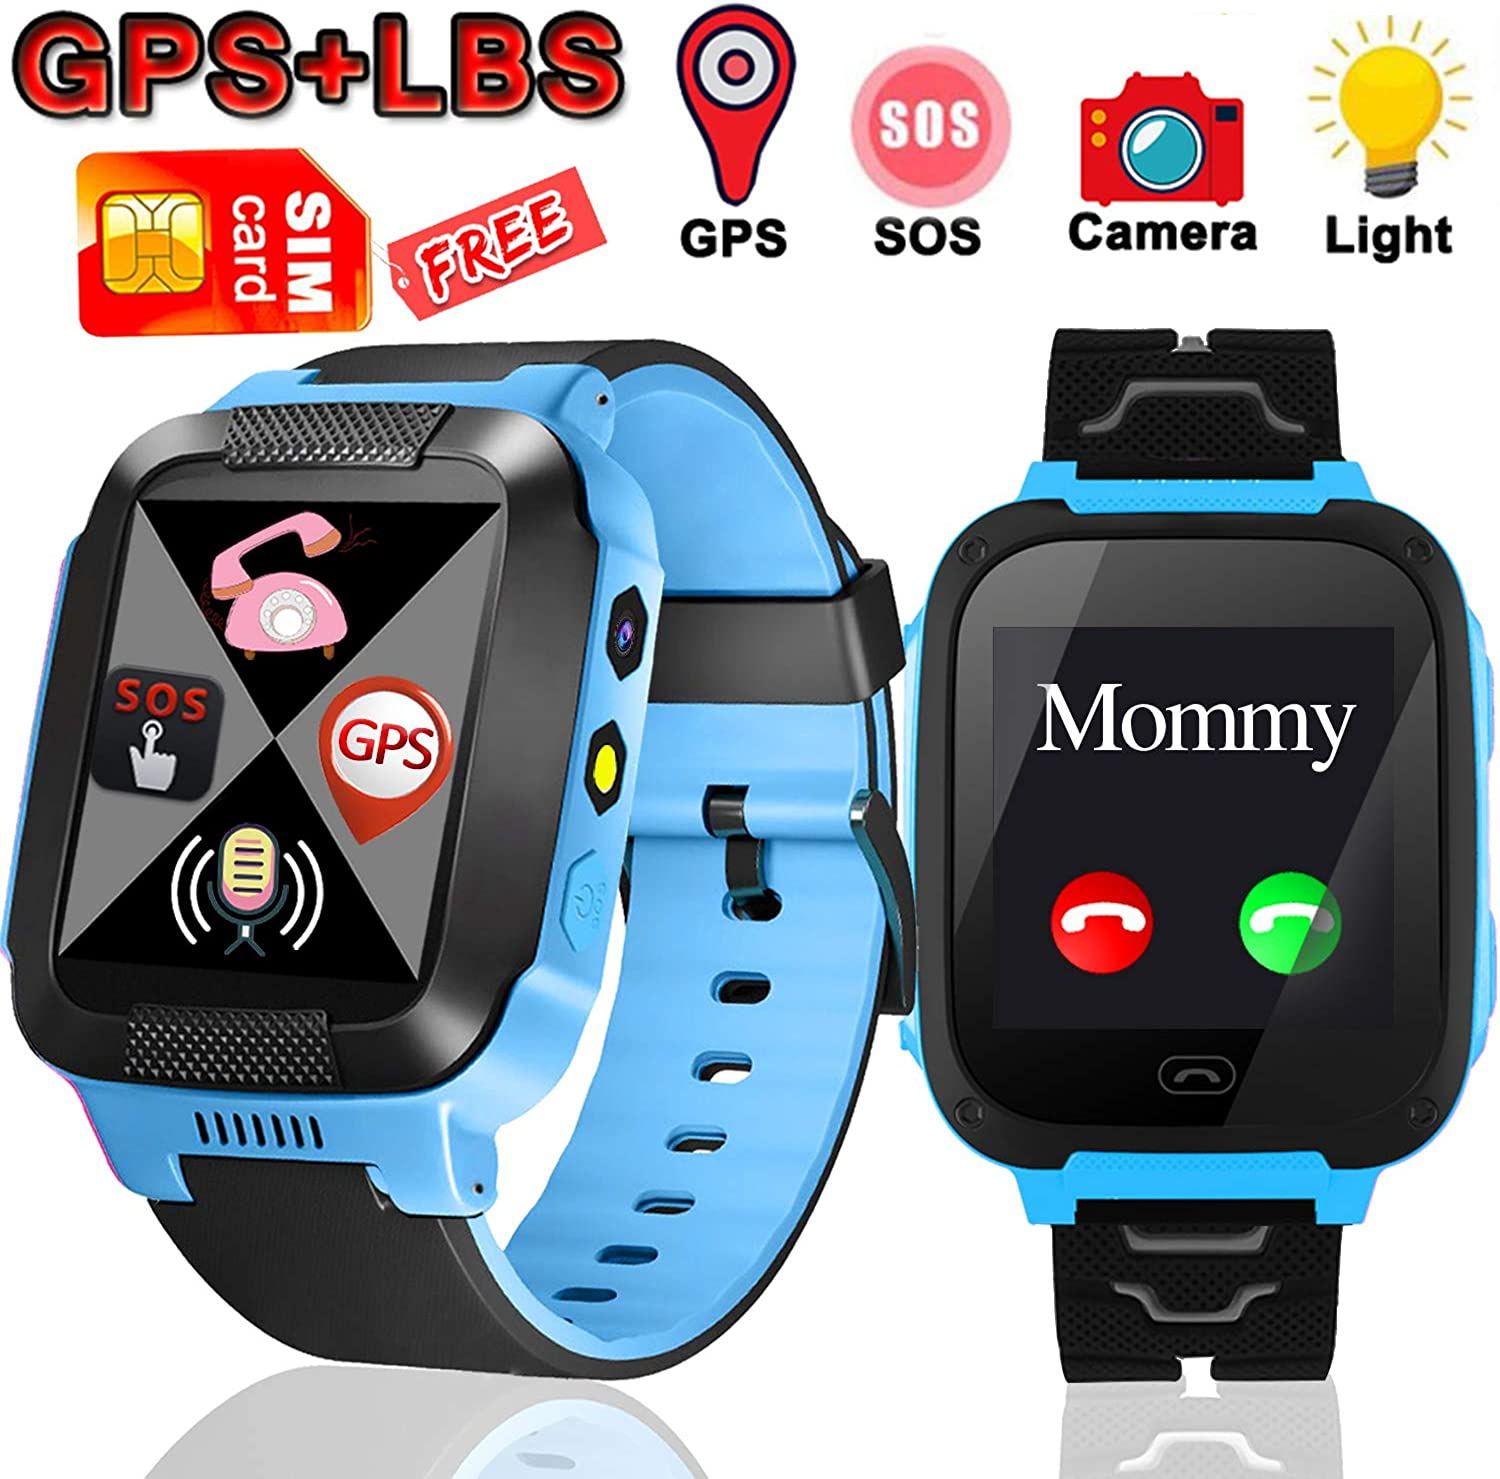 Kids Smart Watch Phone with Free SIM Card,Smartwatch for 3+ Girls Boys with GPS&LBS Positioning Tracker 2 Way Calls&Voice Chat SOS Call Touch Screen Alarm Clock Compatible Android iOS Birthday Gift